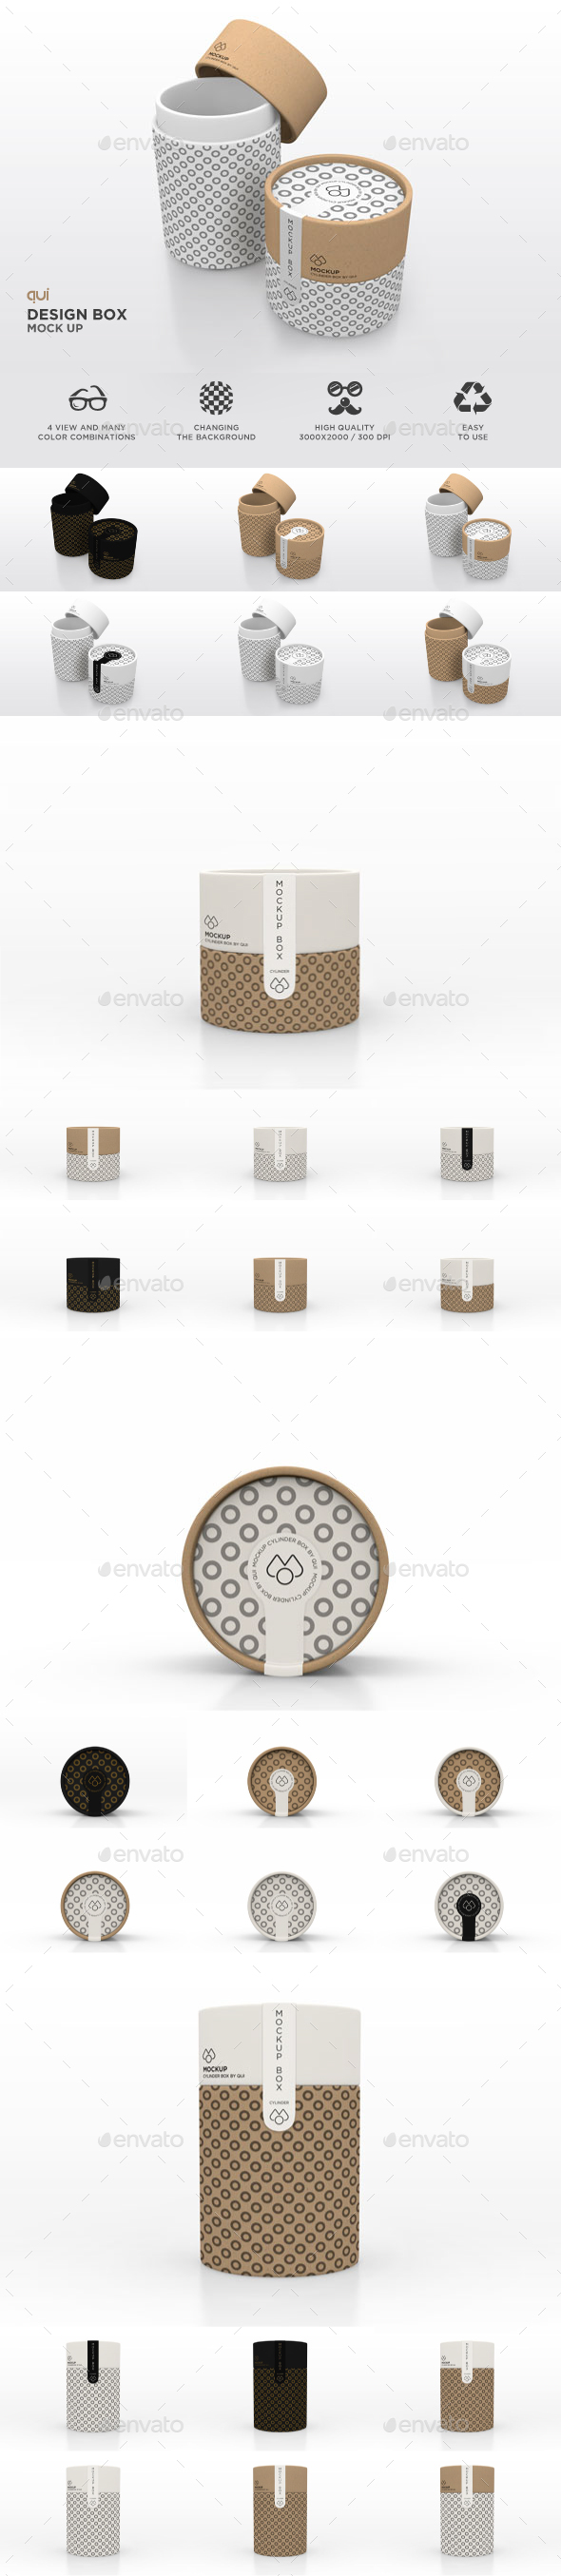 Packaging Mock Up - Paper Carton Tube